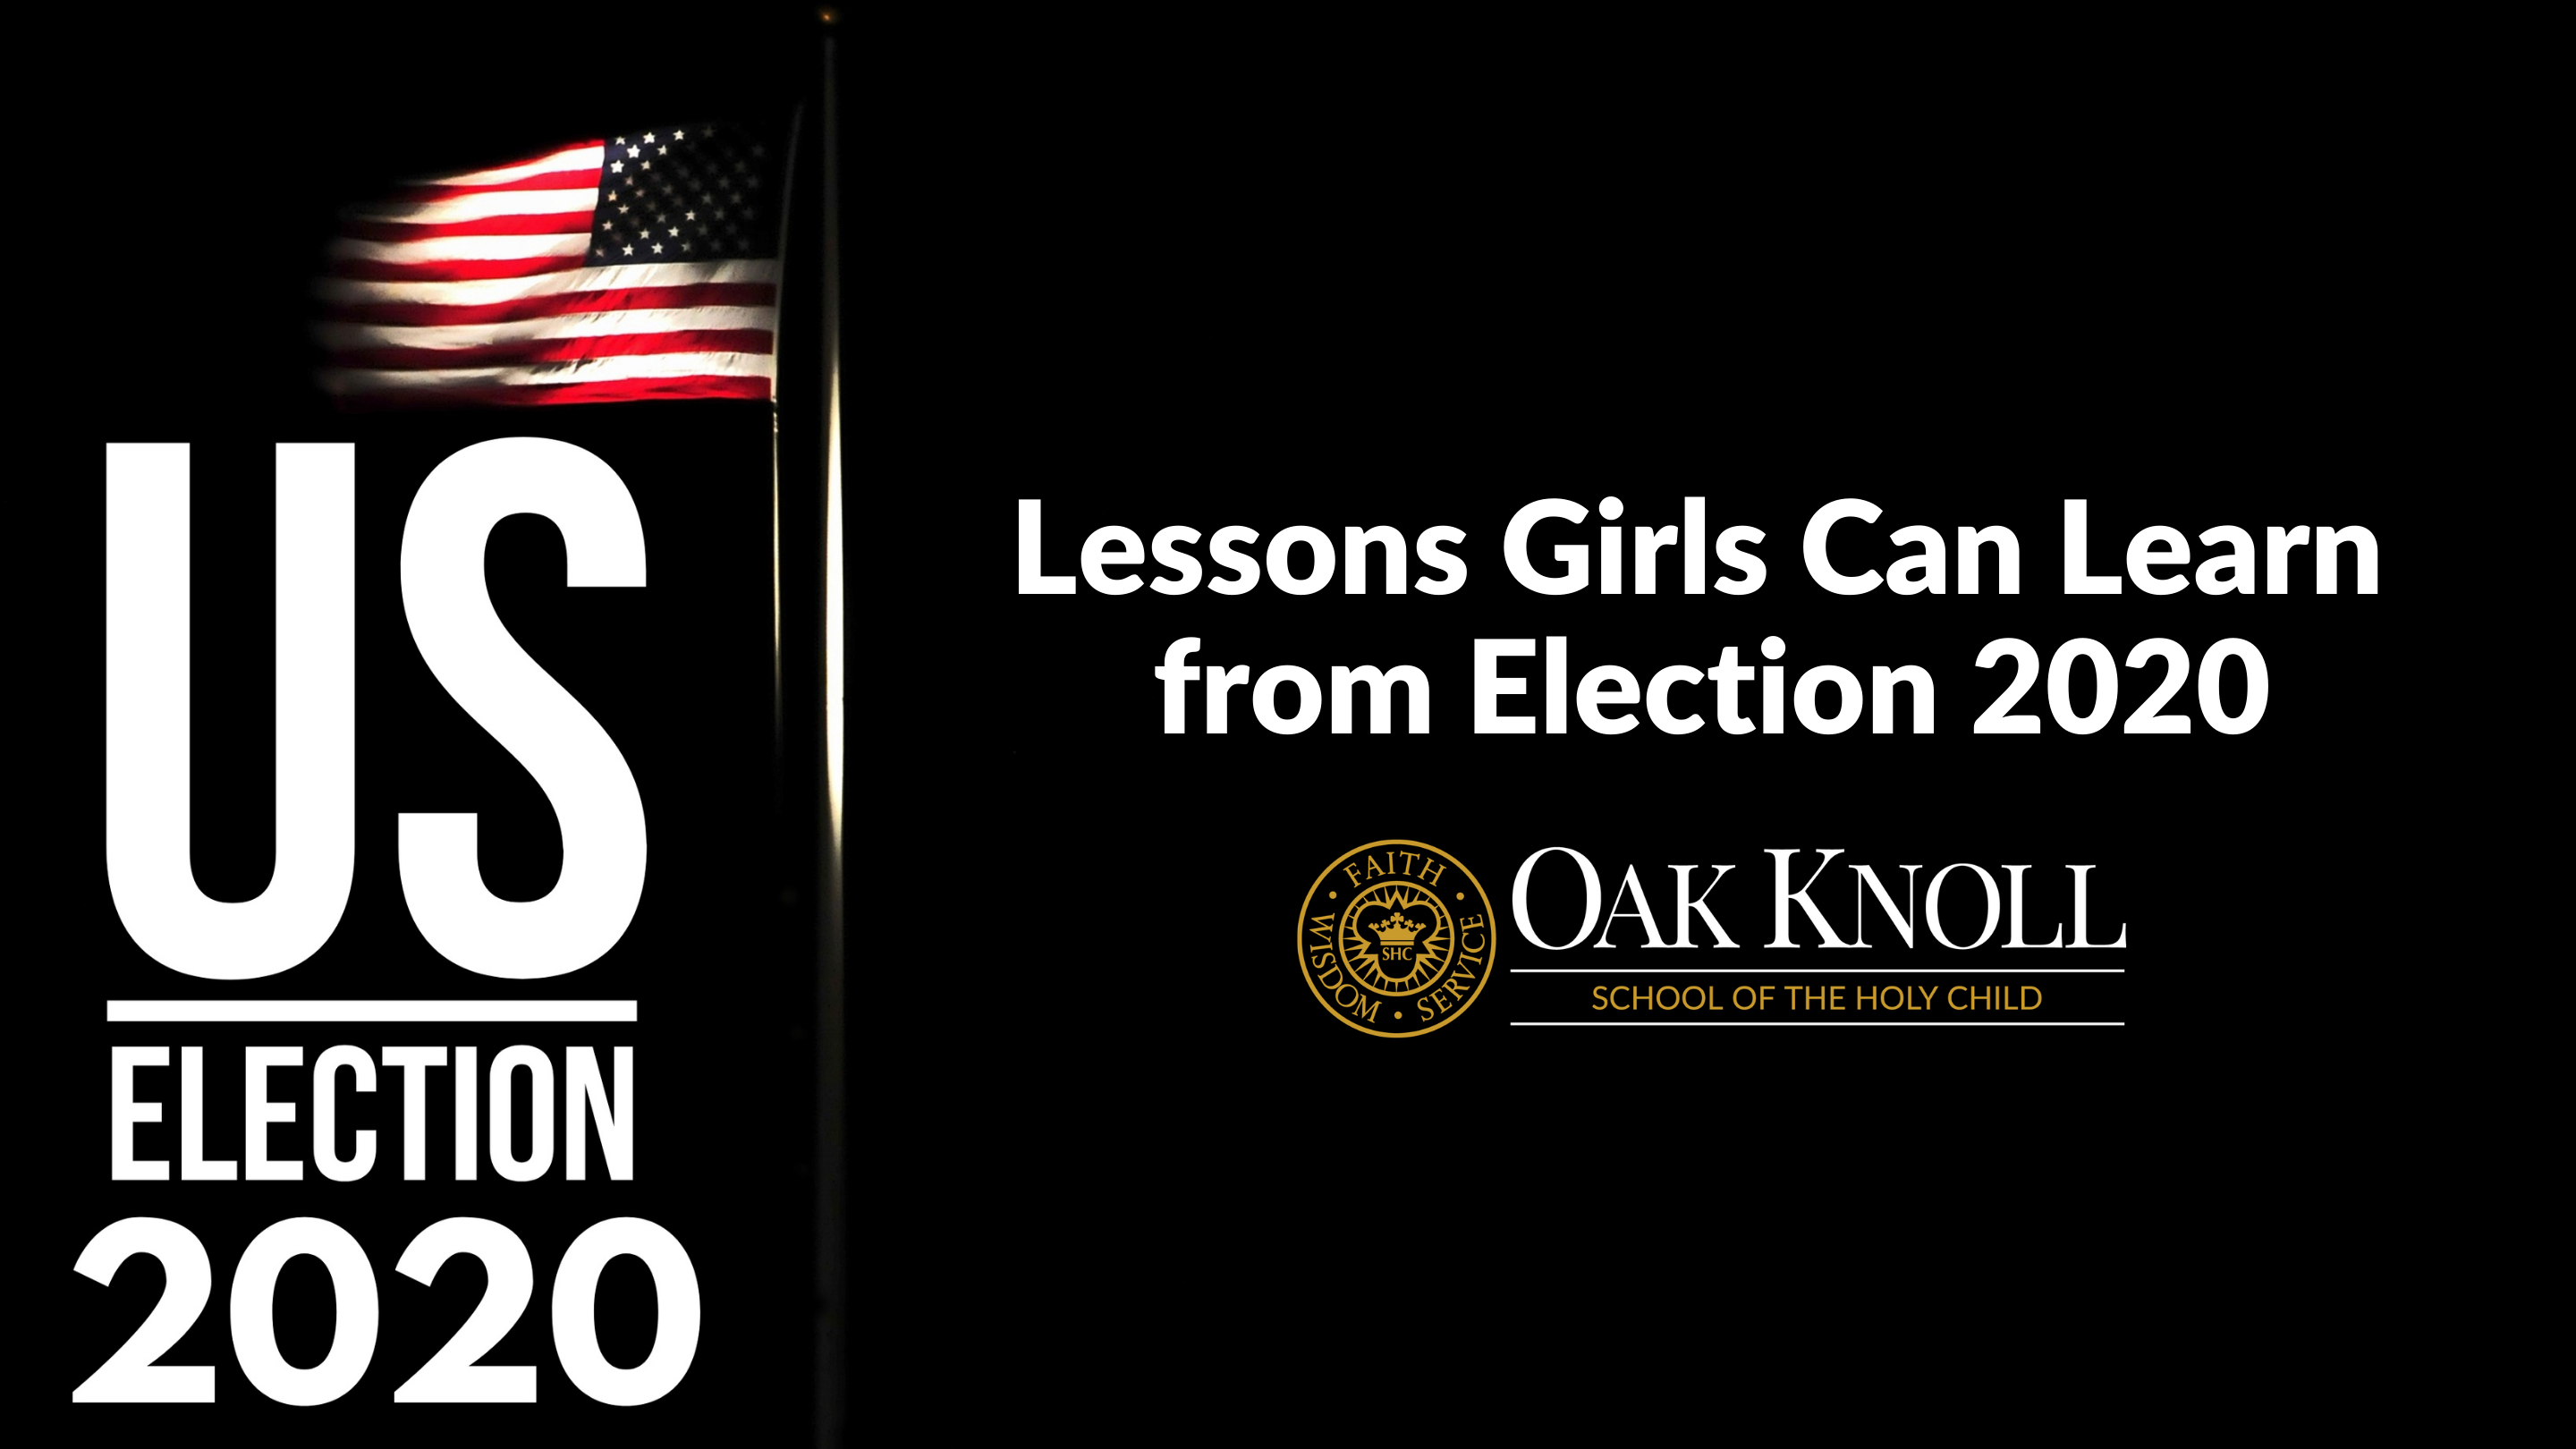 Lessons Girls Can Learn from Election 2020